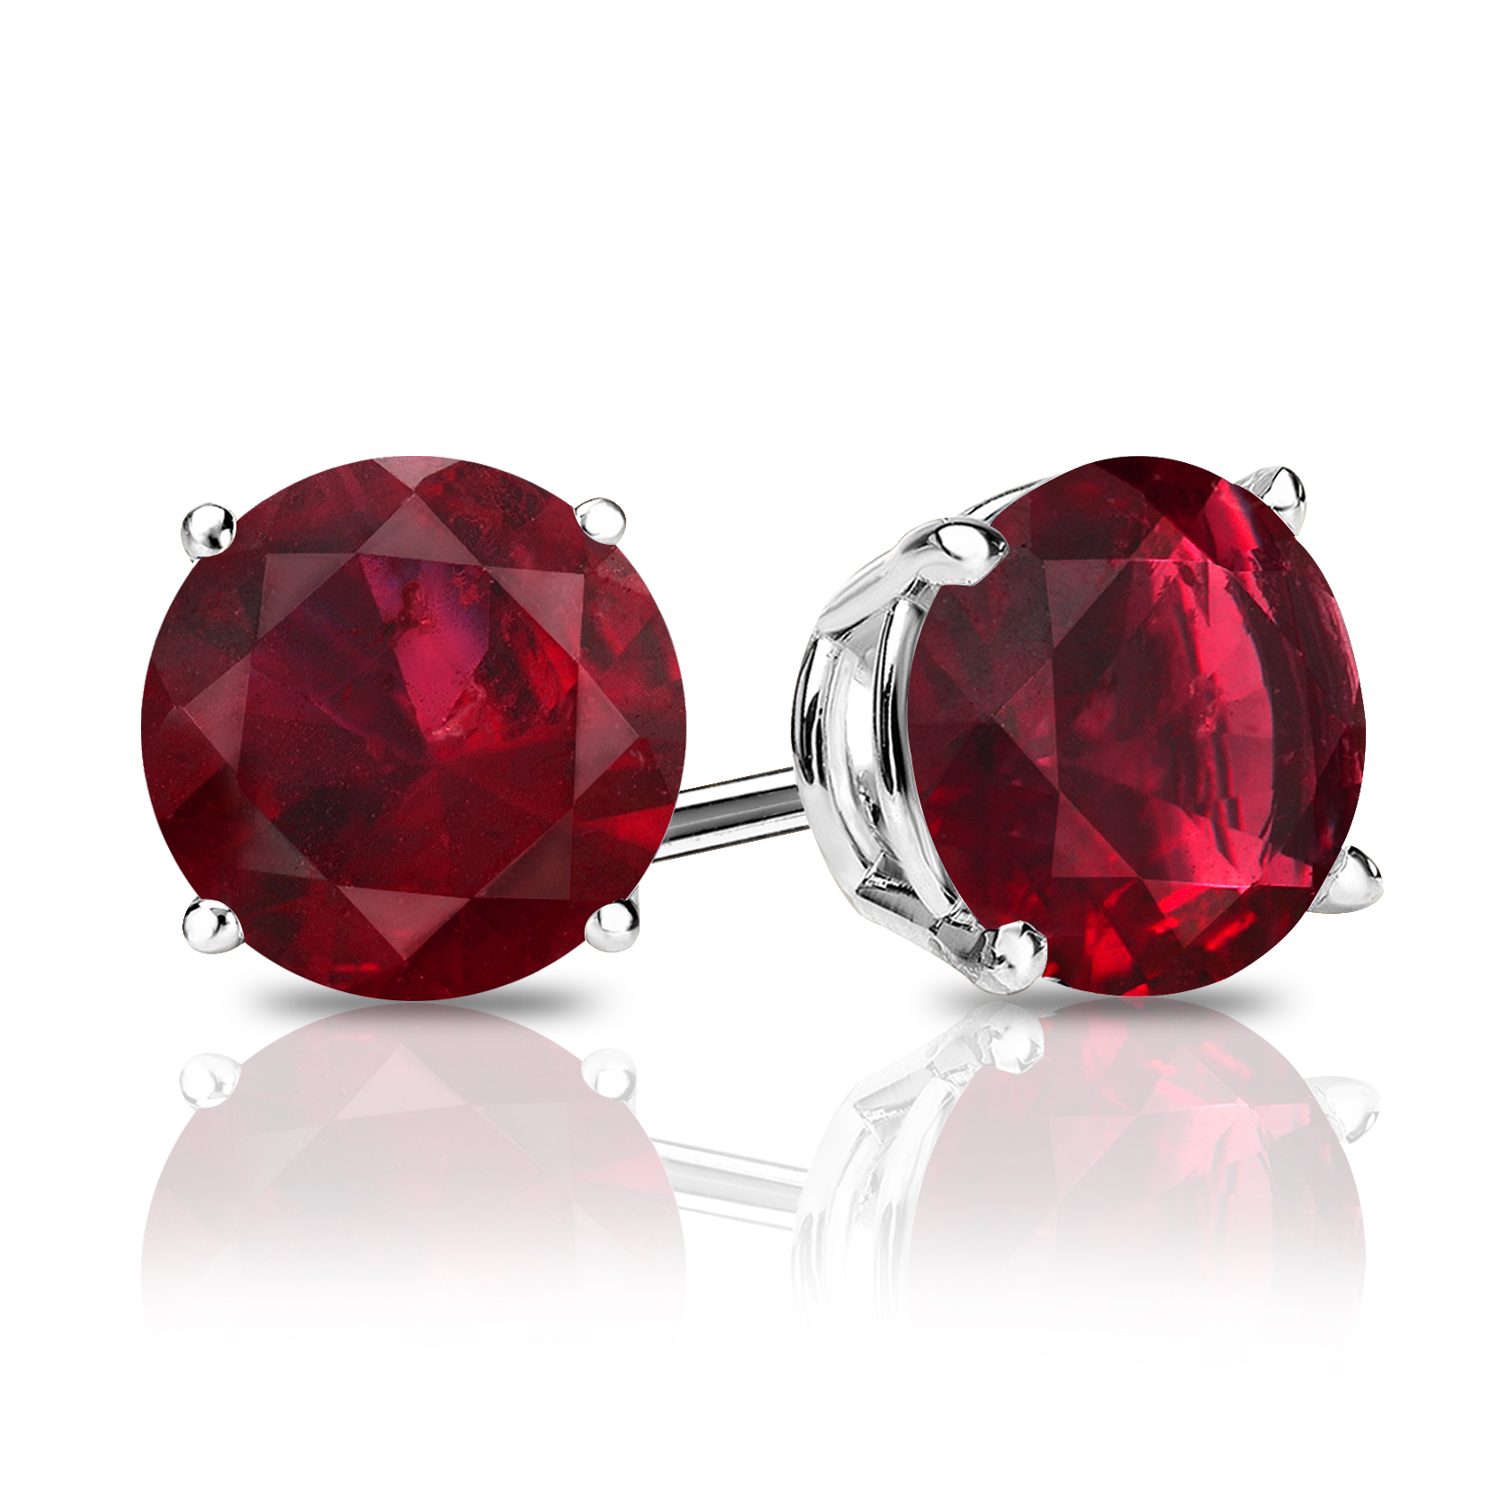 Certified 1.25 cttw Round Ruby Gemstone Stud Earrings in 14k White Gold 4-Prong Basket (Red, AAA)